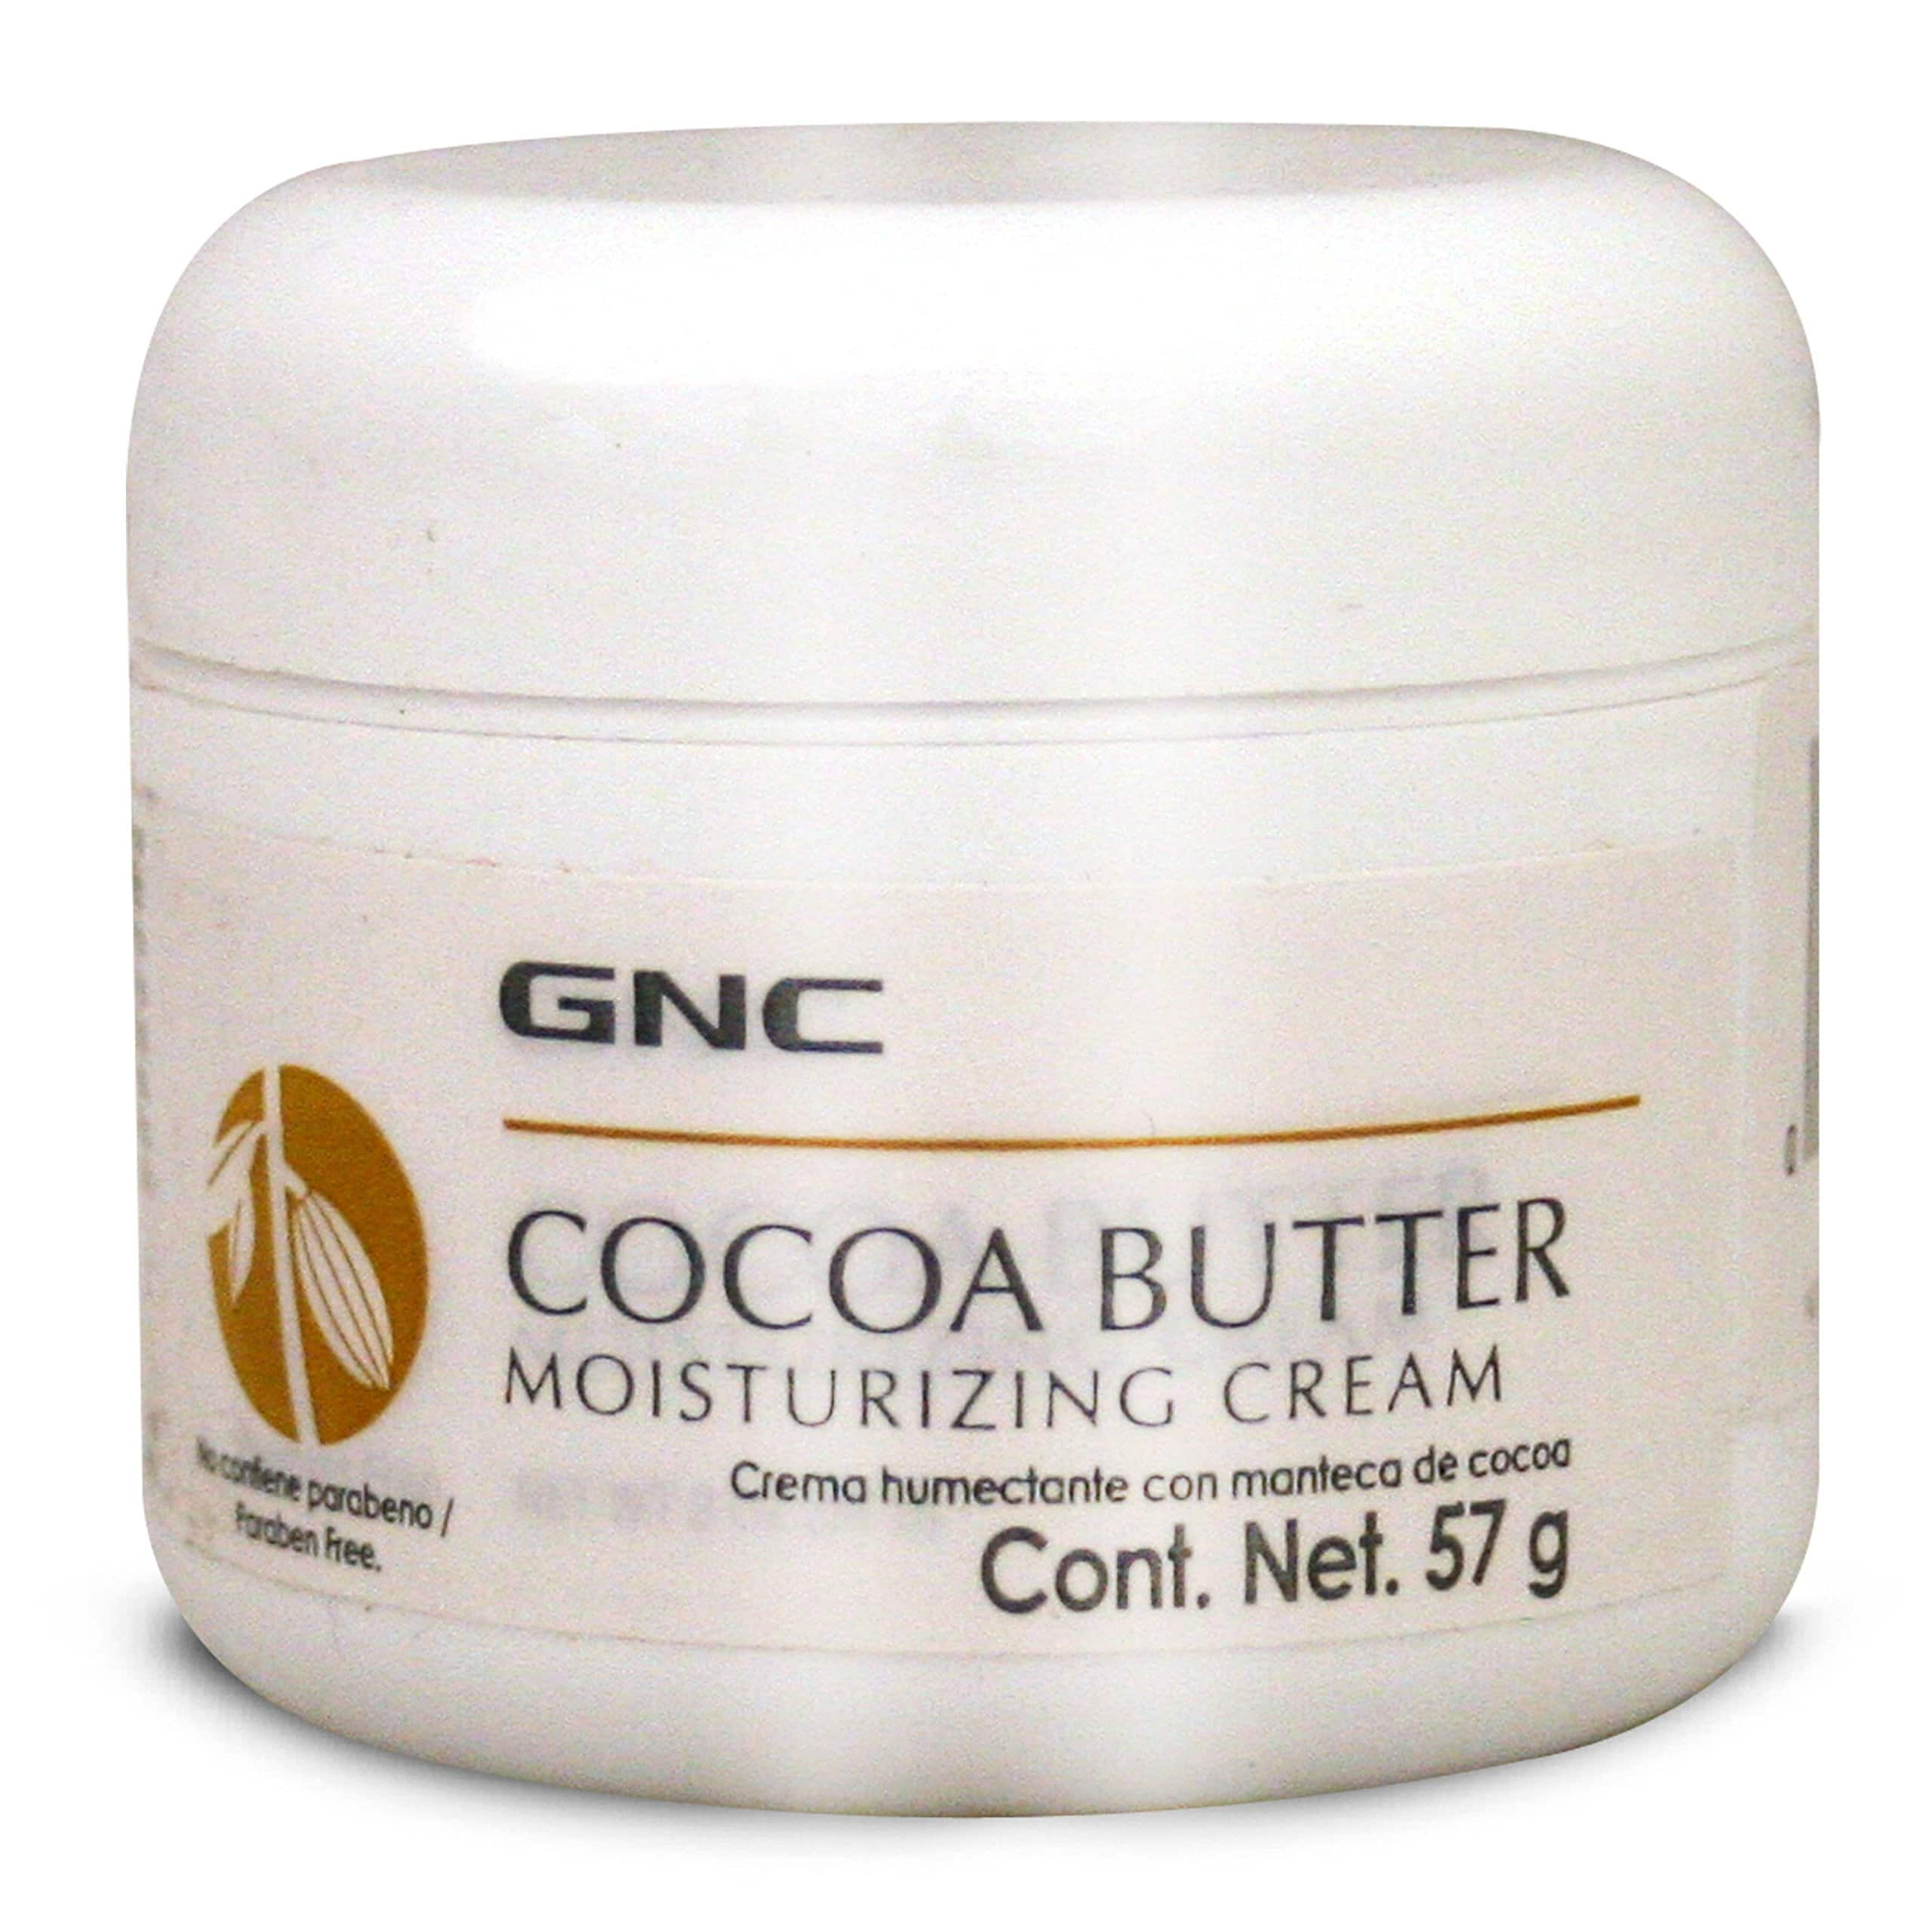 GNC Aloe Vera Moisturizing Cream 2oz $2@Amazon $1.99